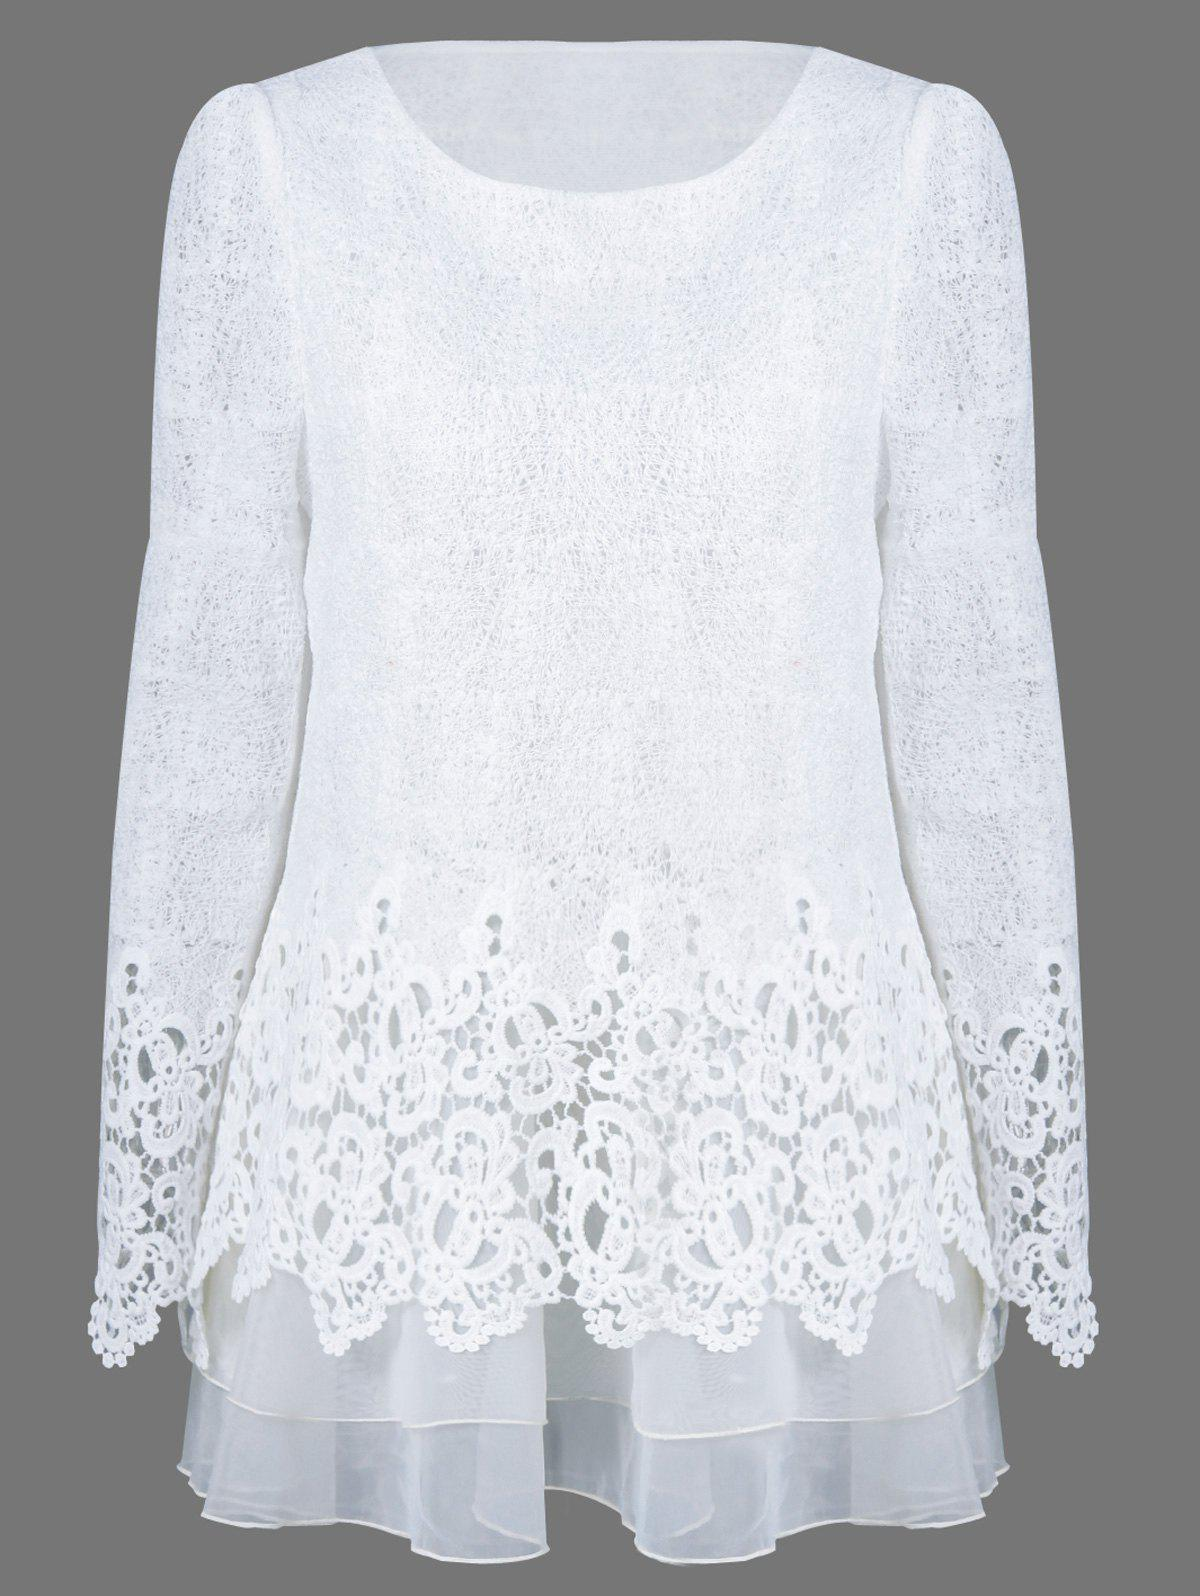 Mesh Patchwork Layered Lace Blouse - WHITE XL